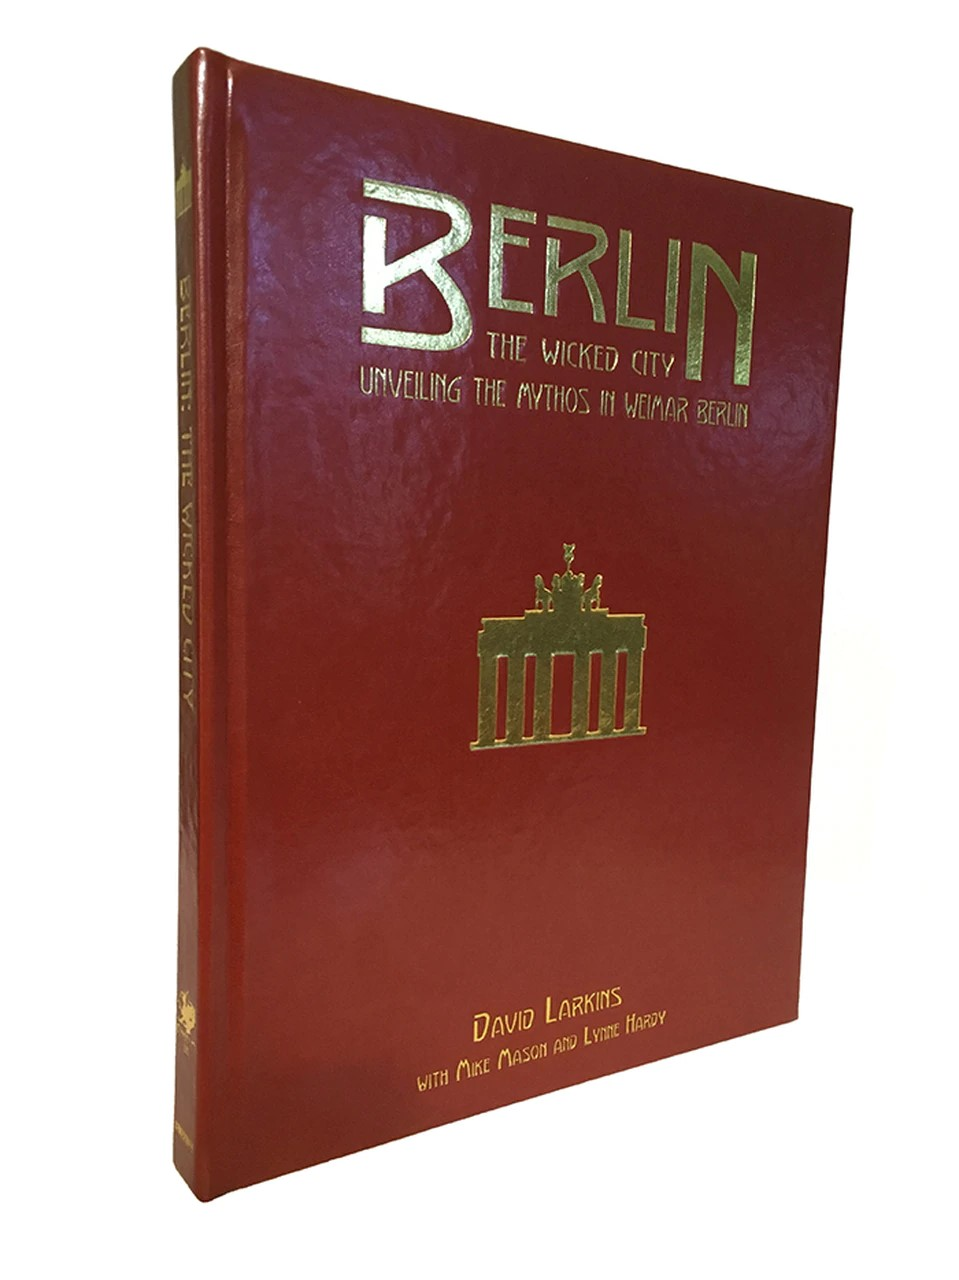 Call of Cthulhu: Berlin The Wicked City Supplement Leatherette - Used